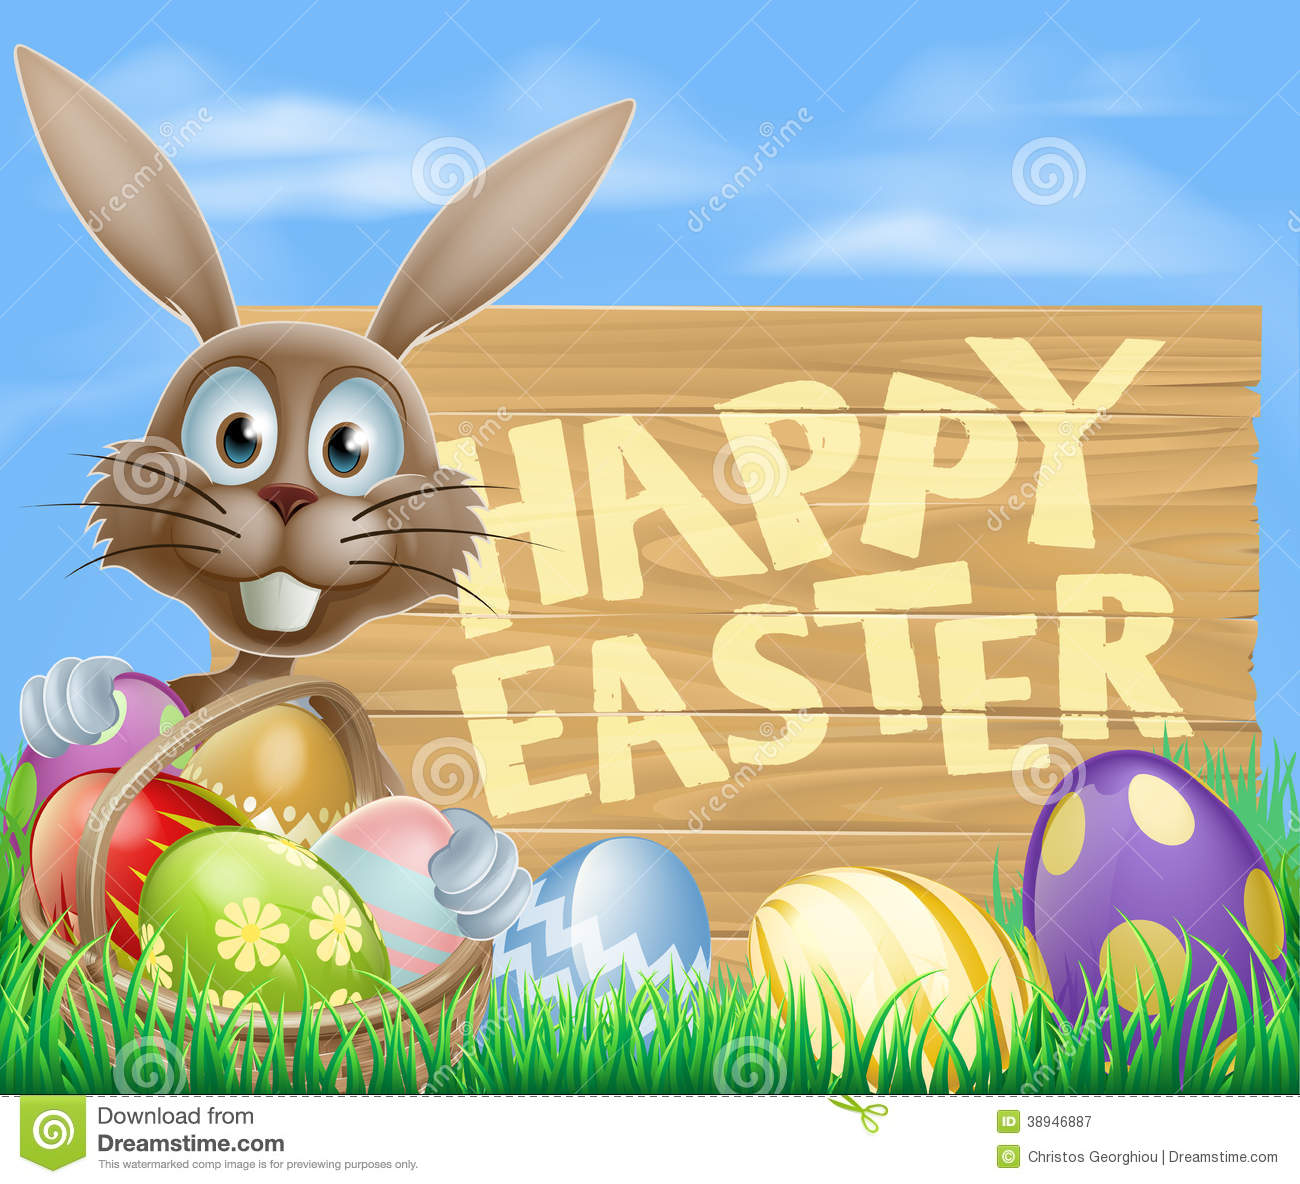 Happy Easter Eggs Basket Bunny Stock Vector - Illustration of hare ... for Easter Eggs In A Basket With A Bunny  545xkb